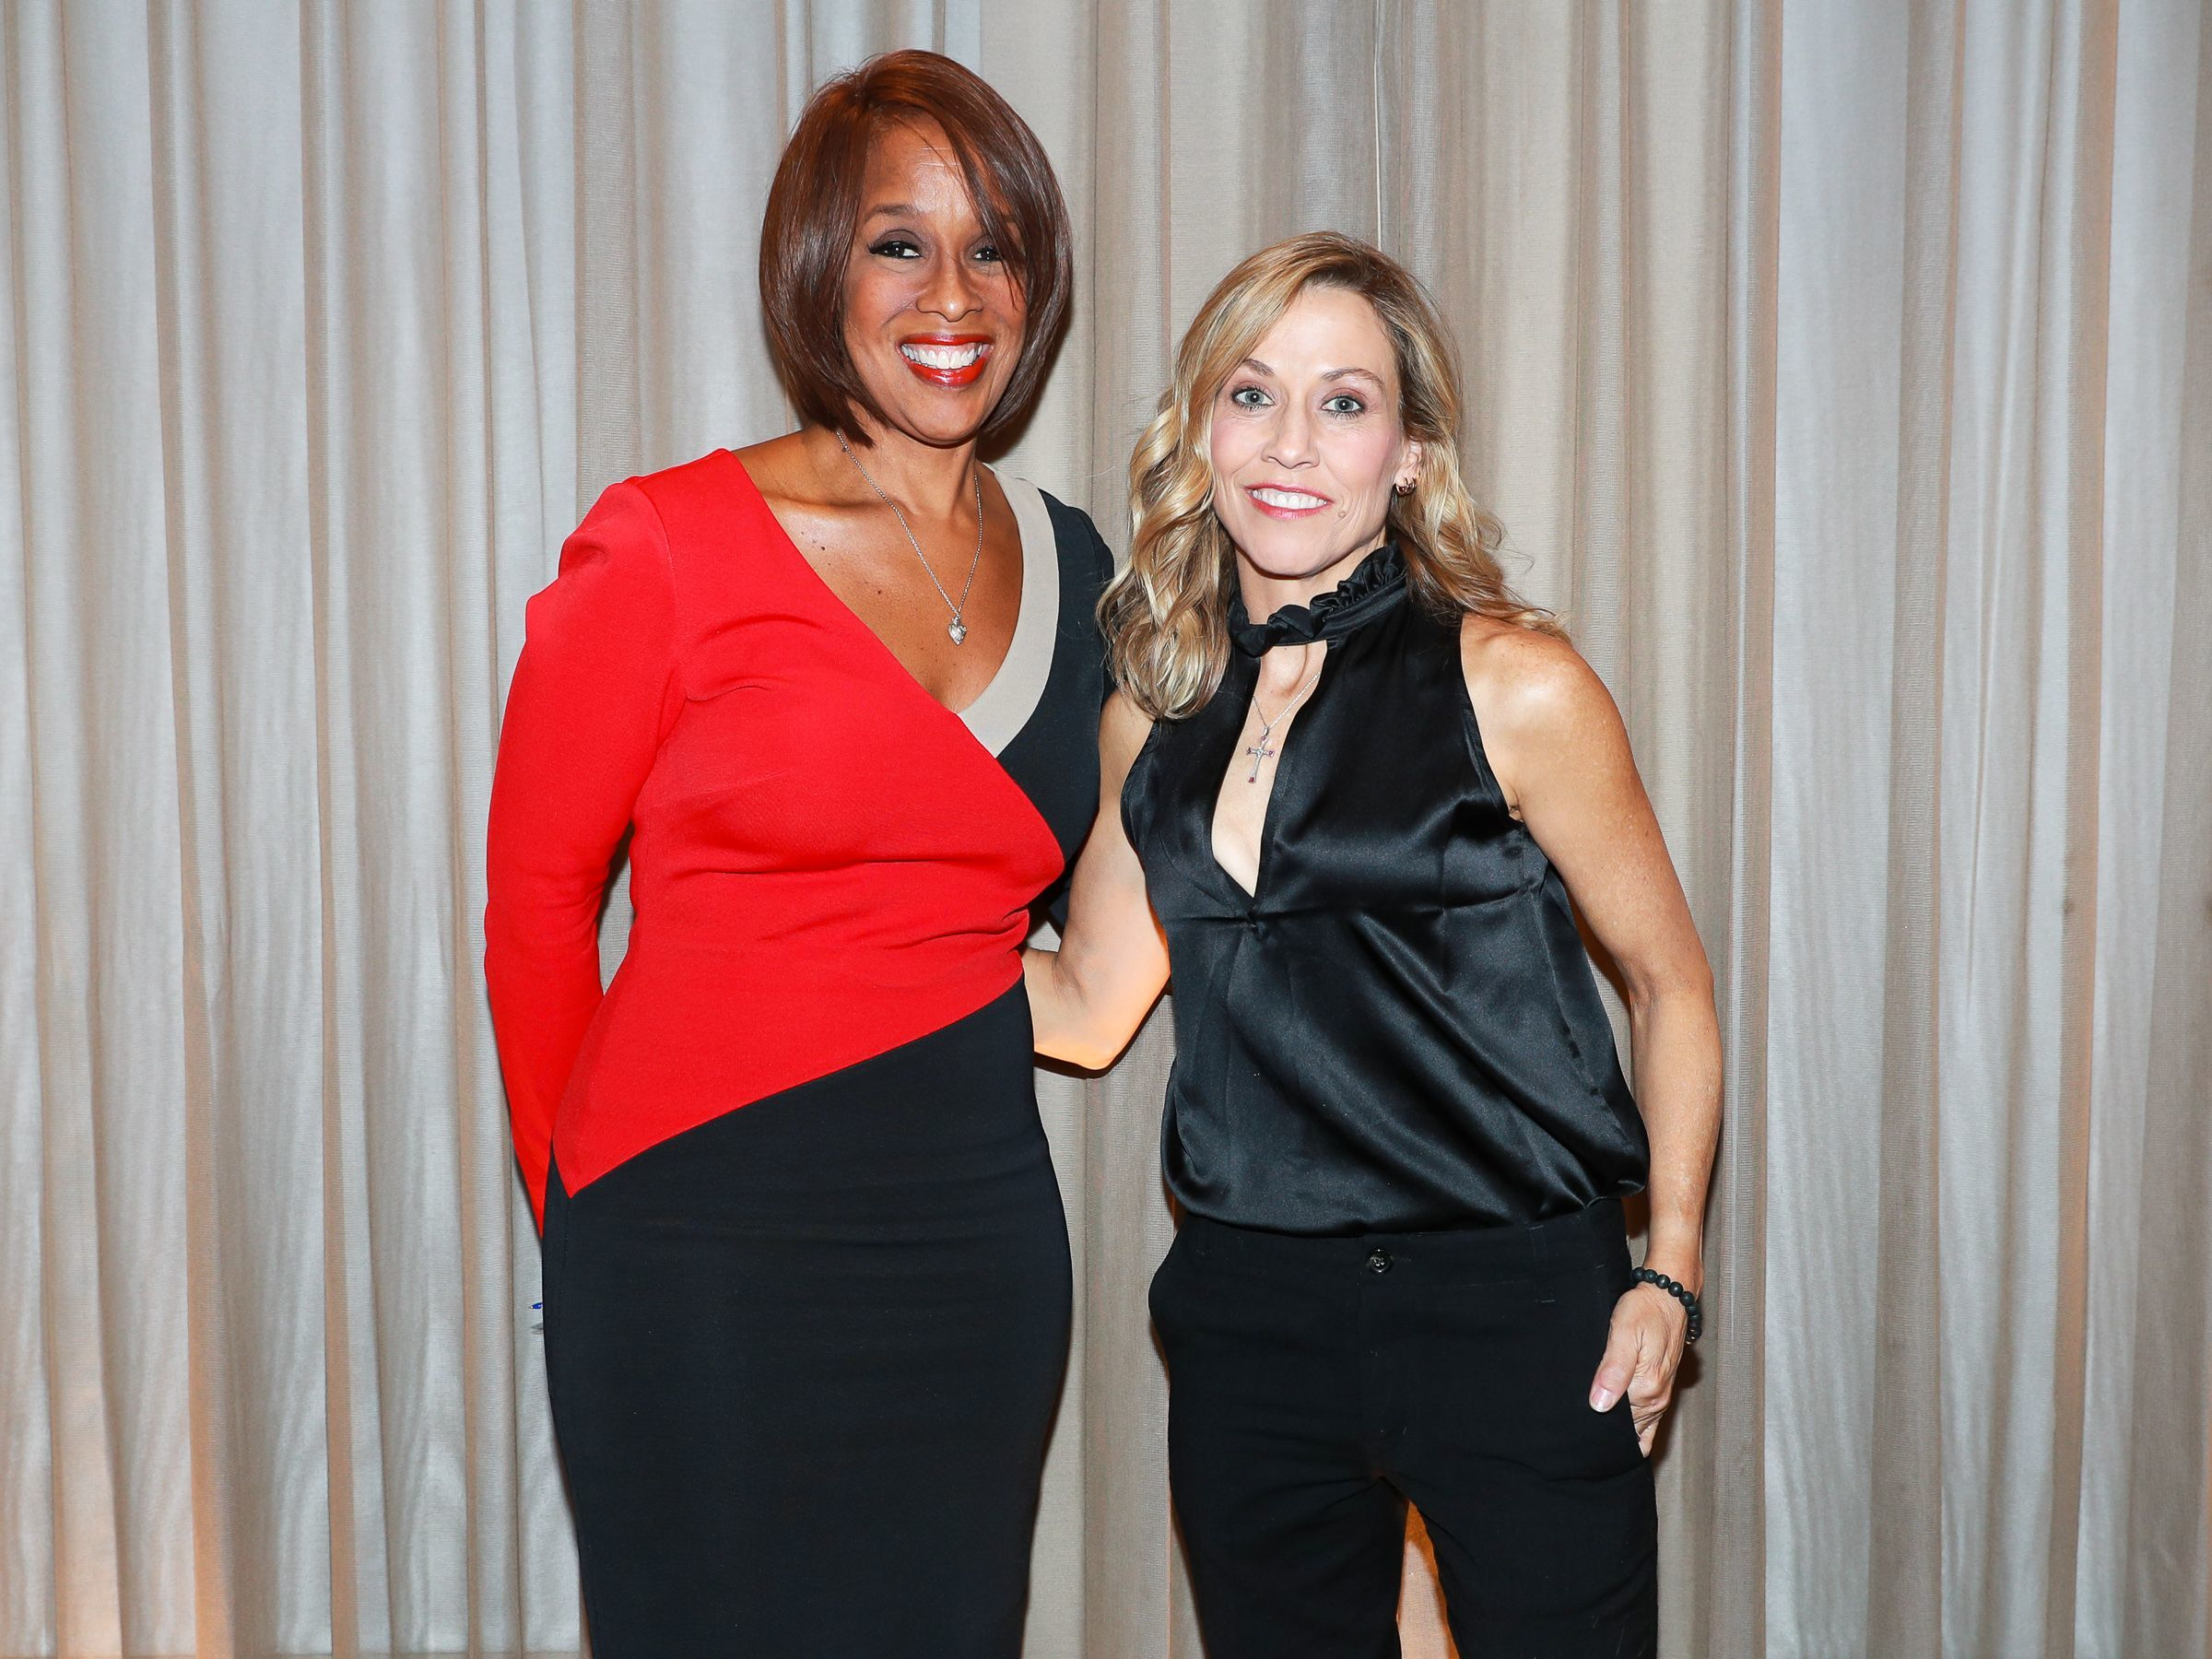 Gayle King and Sheryl Crow attend the Sandy Hook Promise Benefit in New York on Dec. 12, 2017.